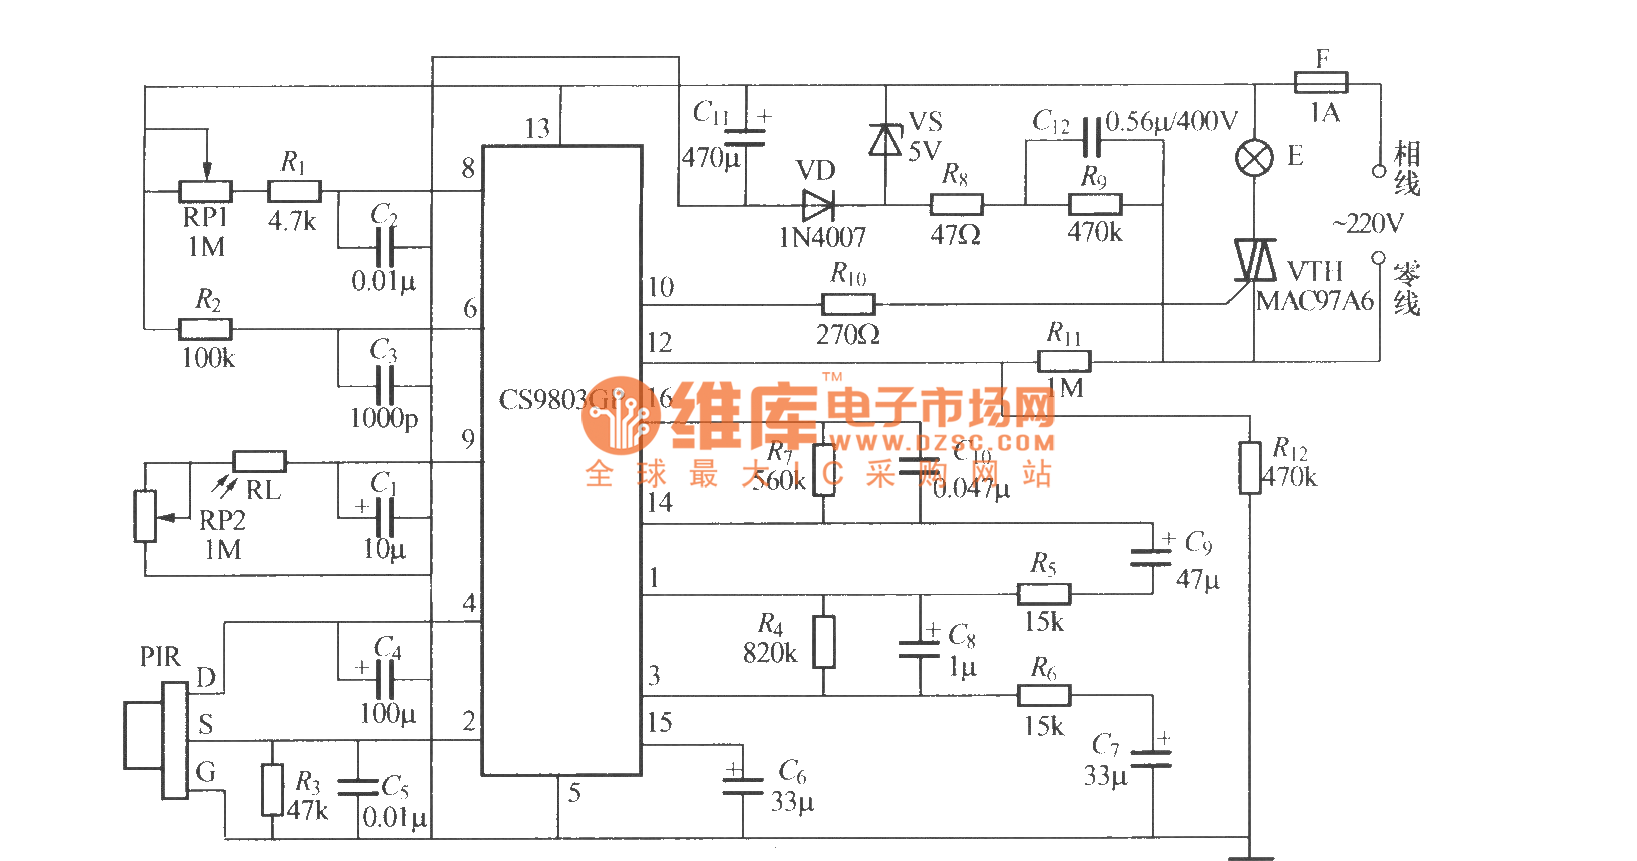 Pyroelectric Infrared Induction Automatic Lamp Circuit 4cs9803gp Wwwseekiccom Circuitdiagram Powersupplycircuit Negativevoltage